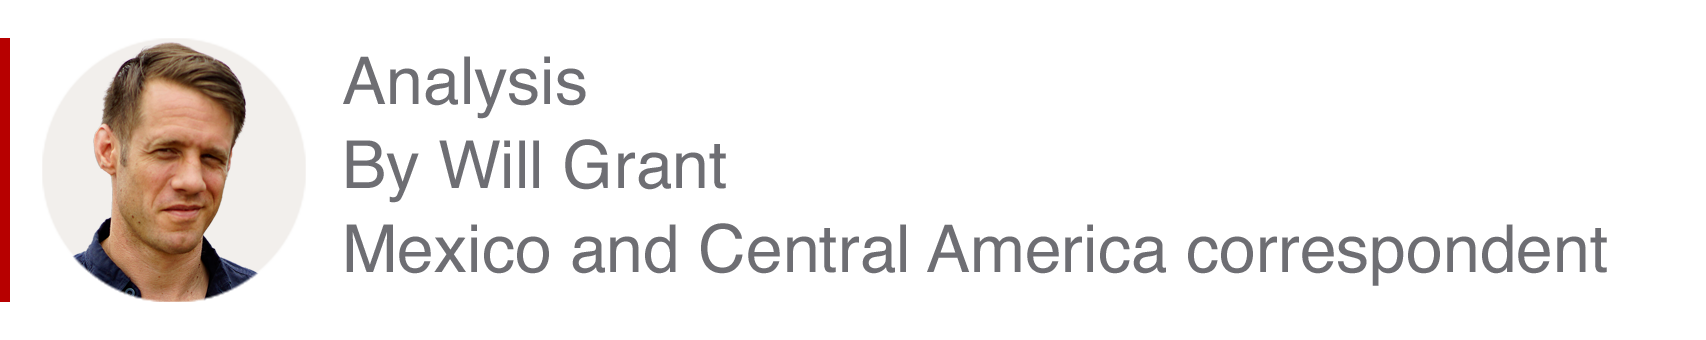 Analysis box by Will Grant, Mexico and Central America correspondent